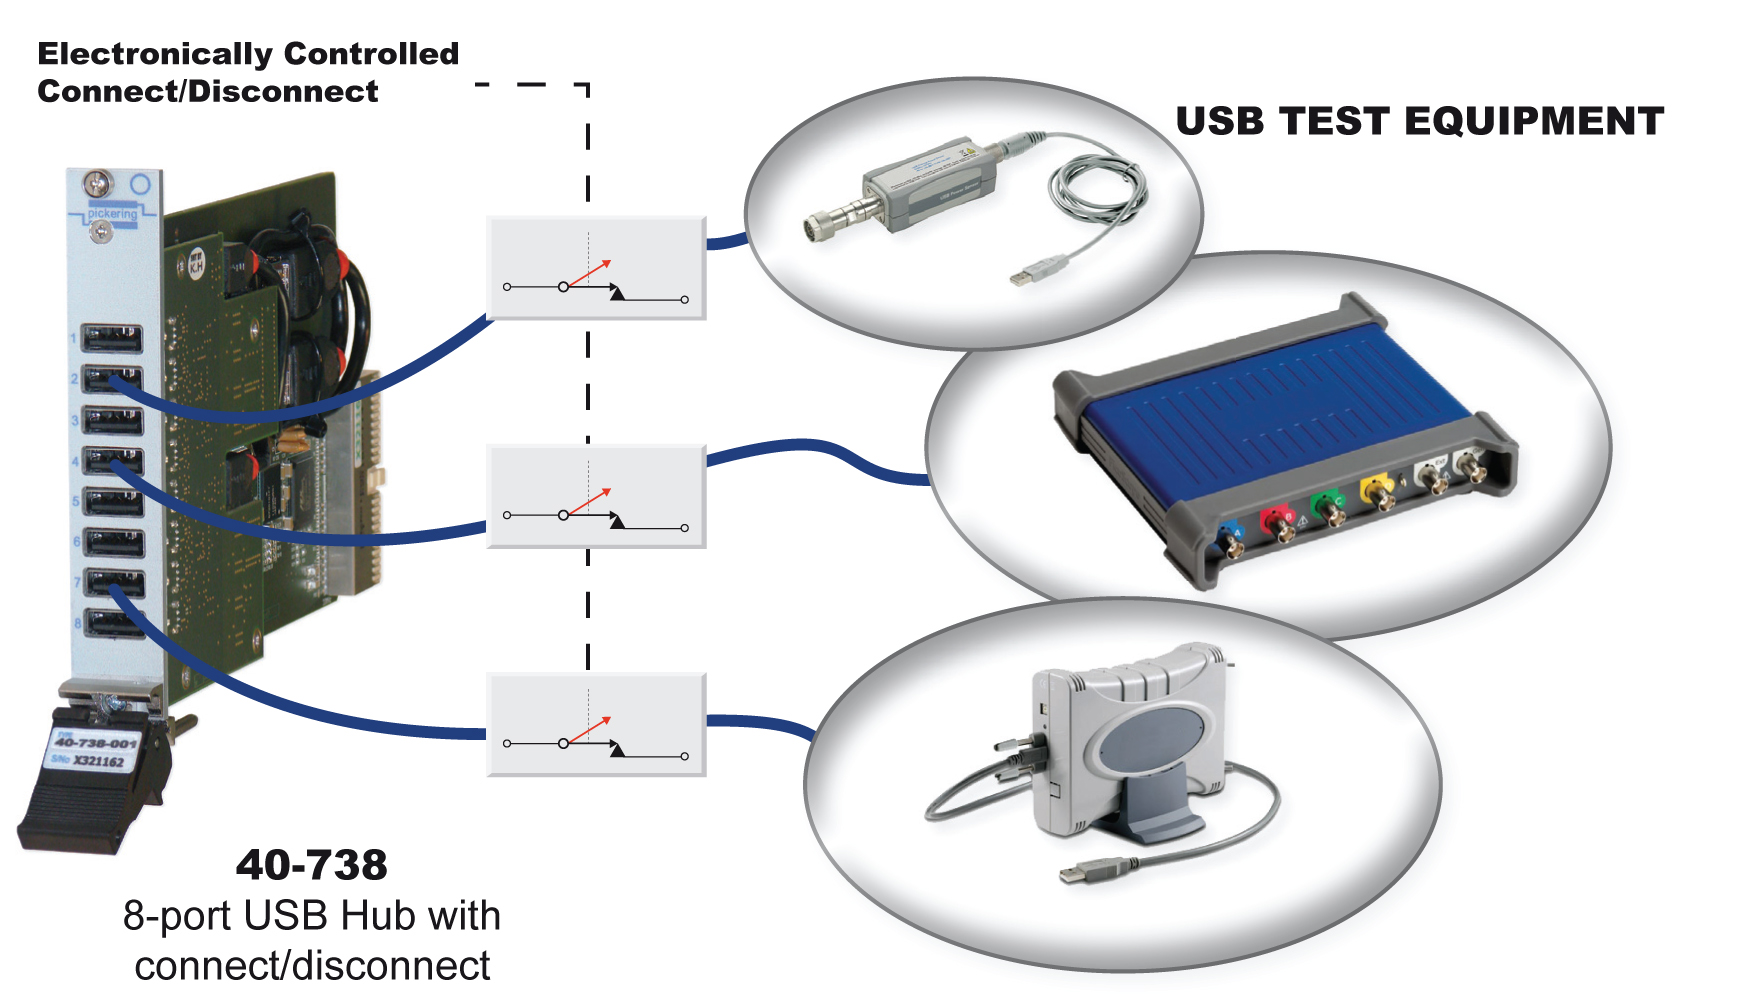 Diagram showing the connections the 40-738 can make to USB test equipment